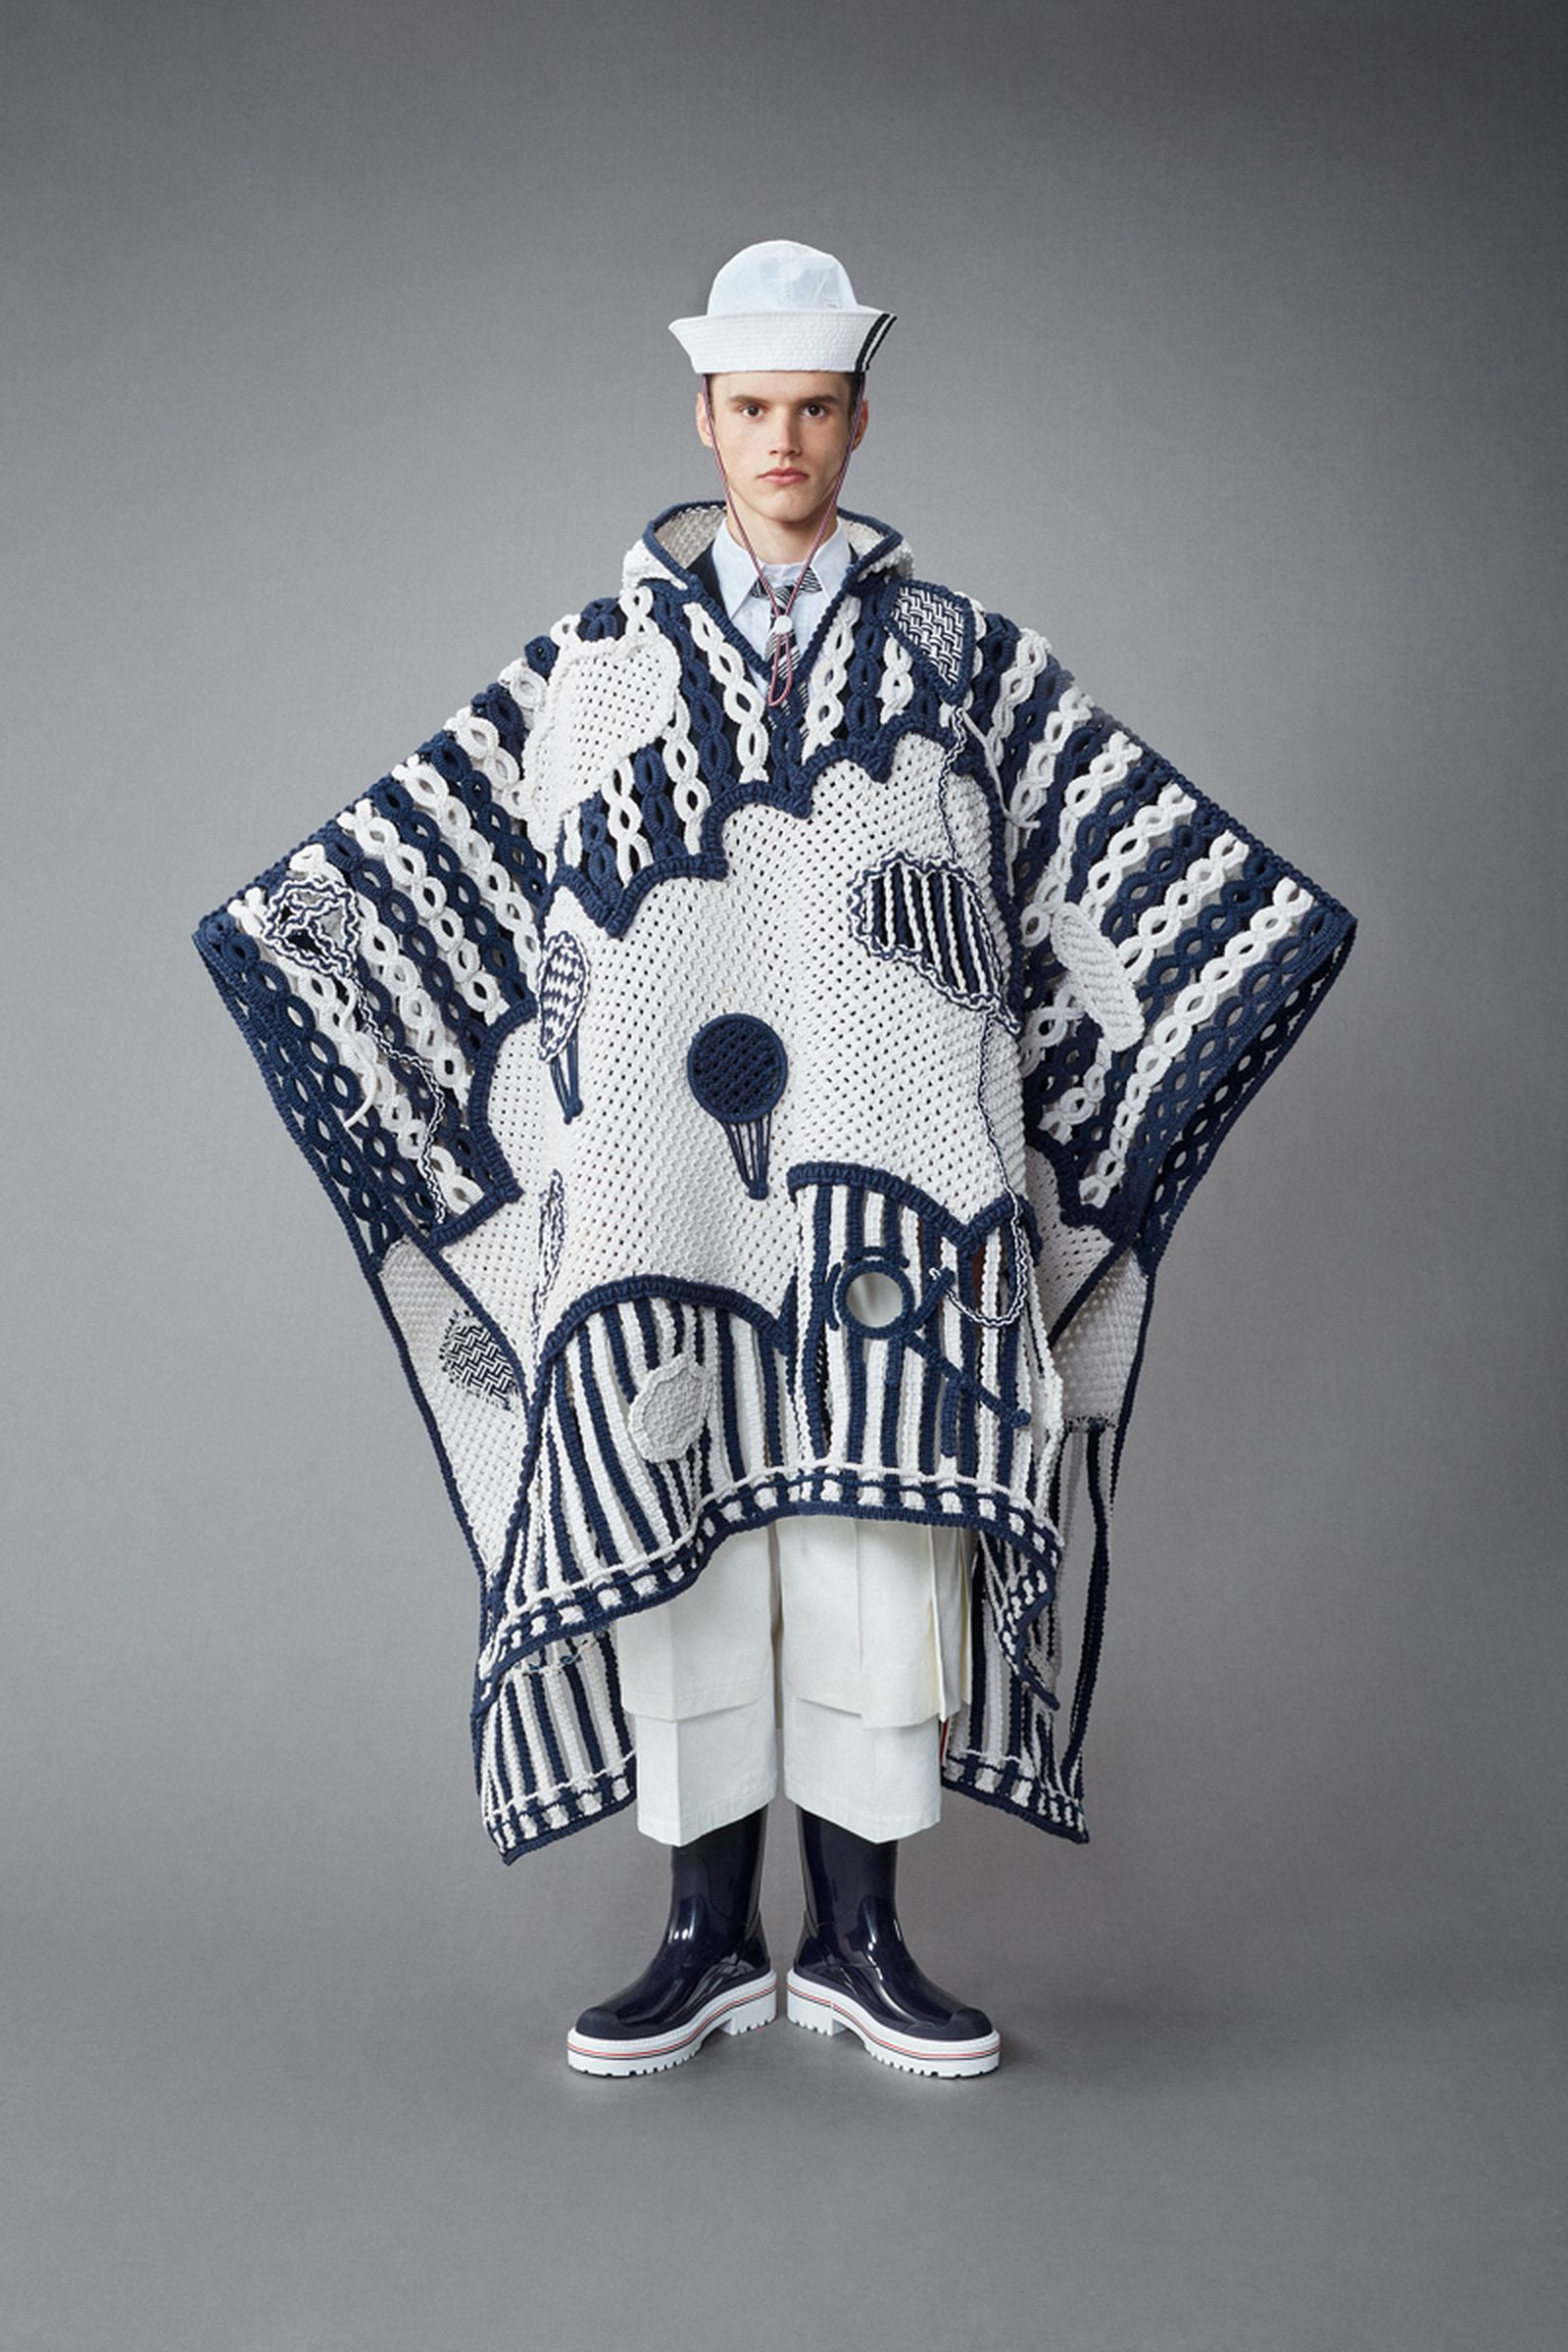 thom-browne-resort-2022-collection- (39)